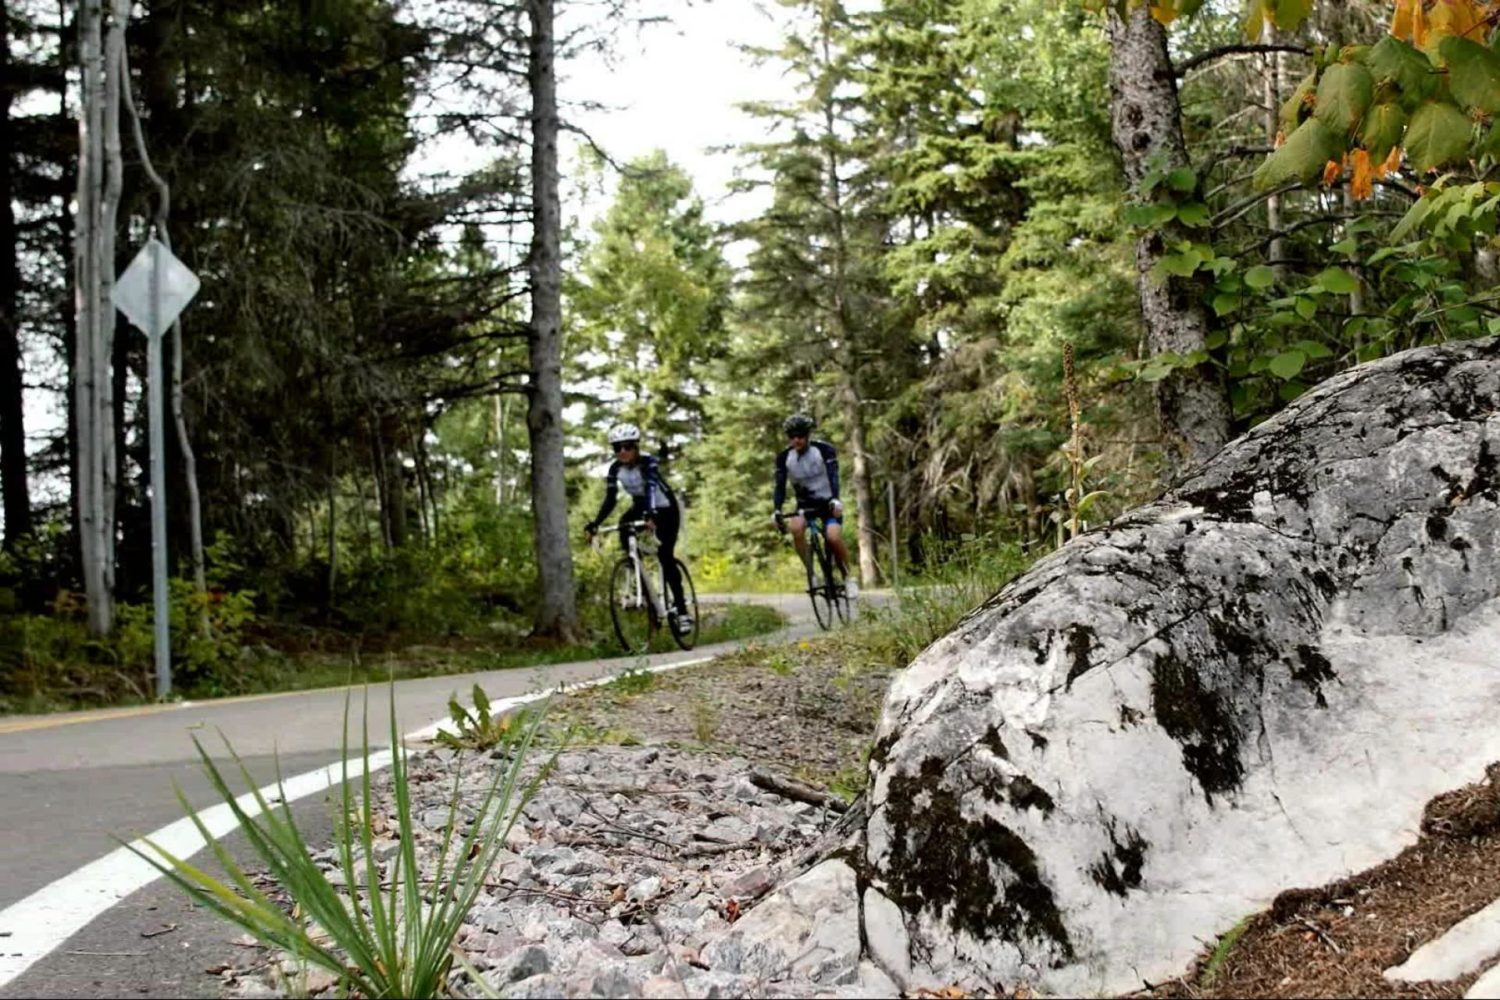 Beautiful forest on this bike tour through Quebec's blueberry route